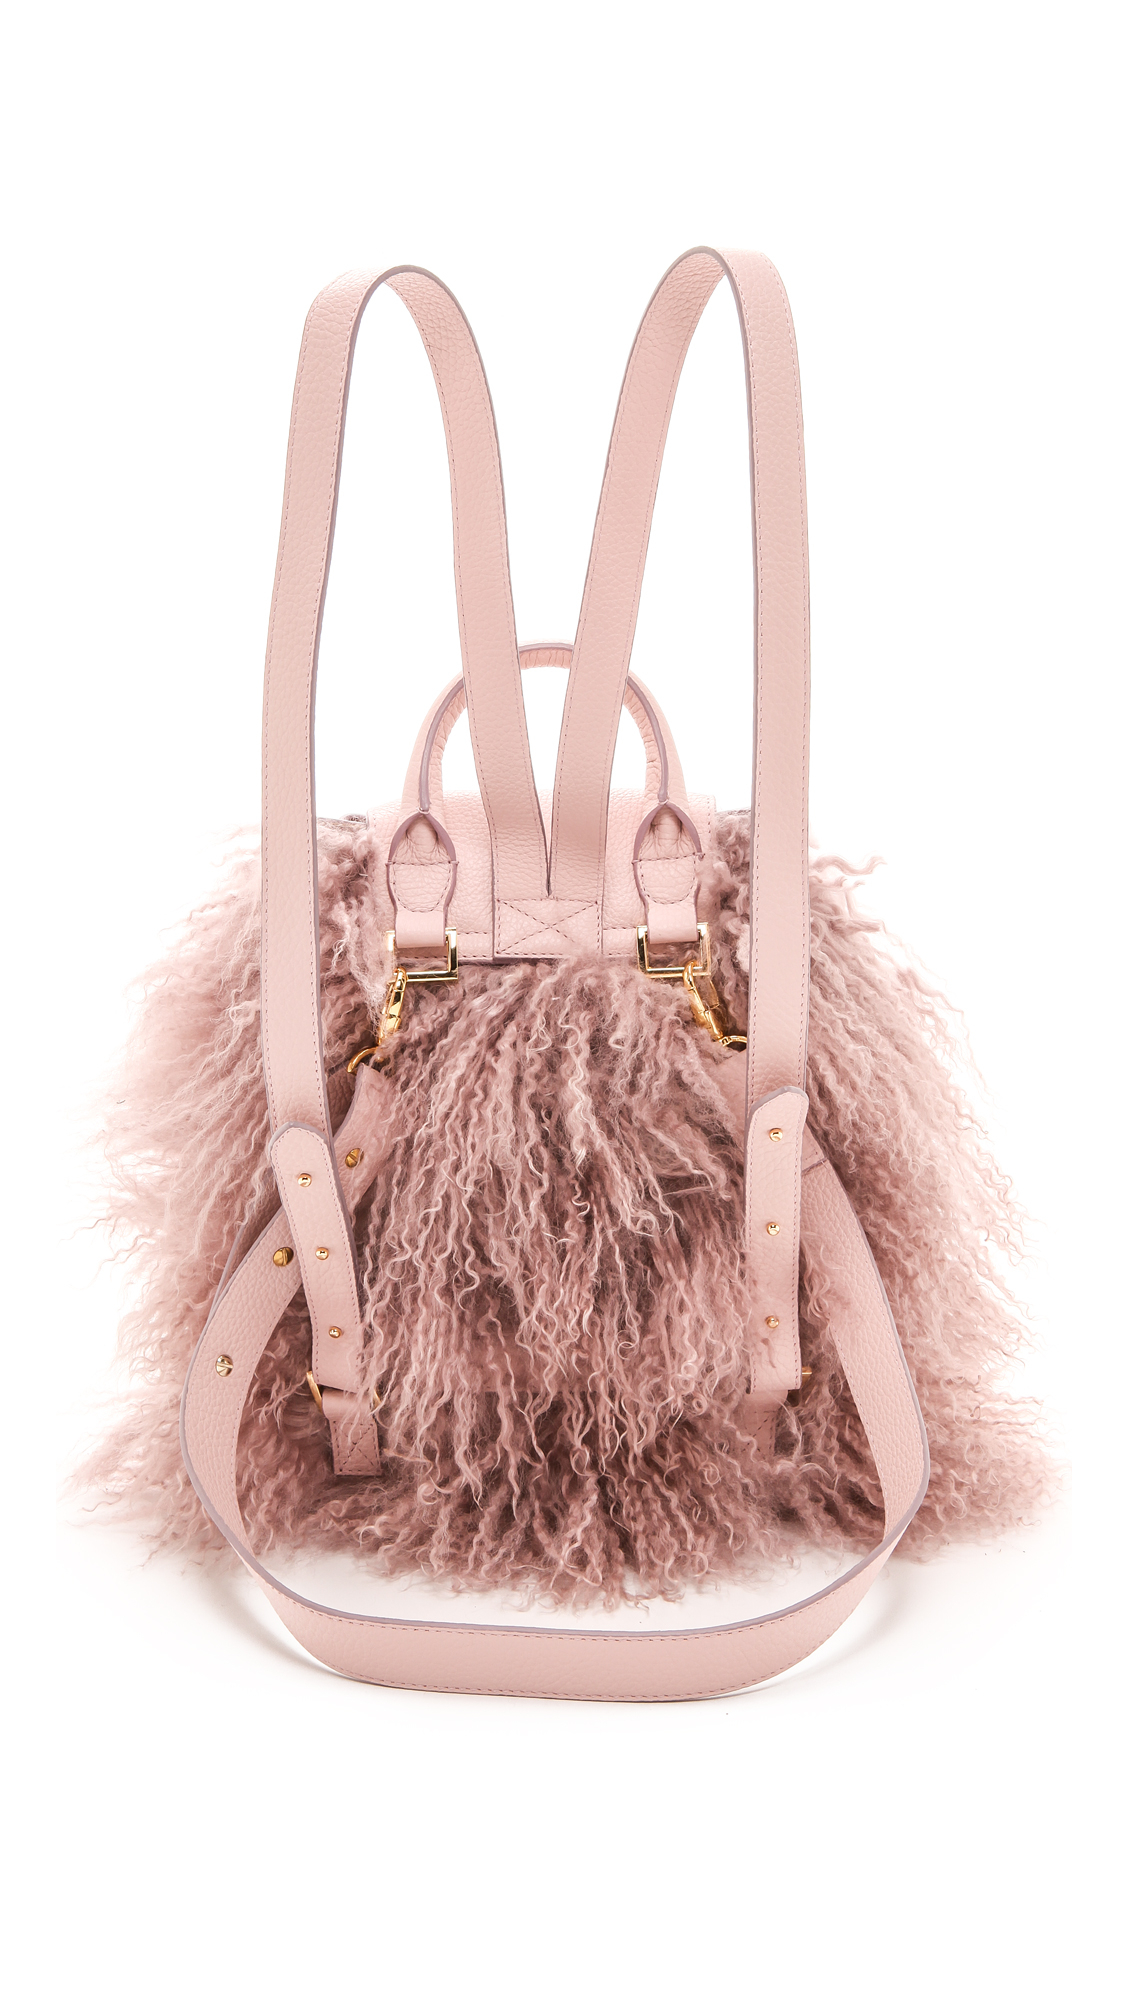 Meli melo Mini Backpack with Lux Shearling Dusty Pink in Pink | Lyst